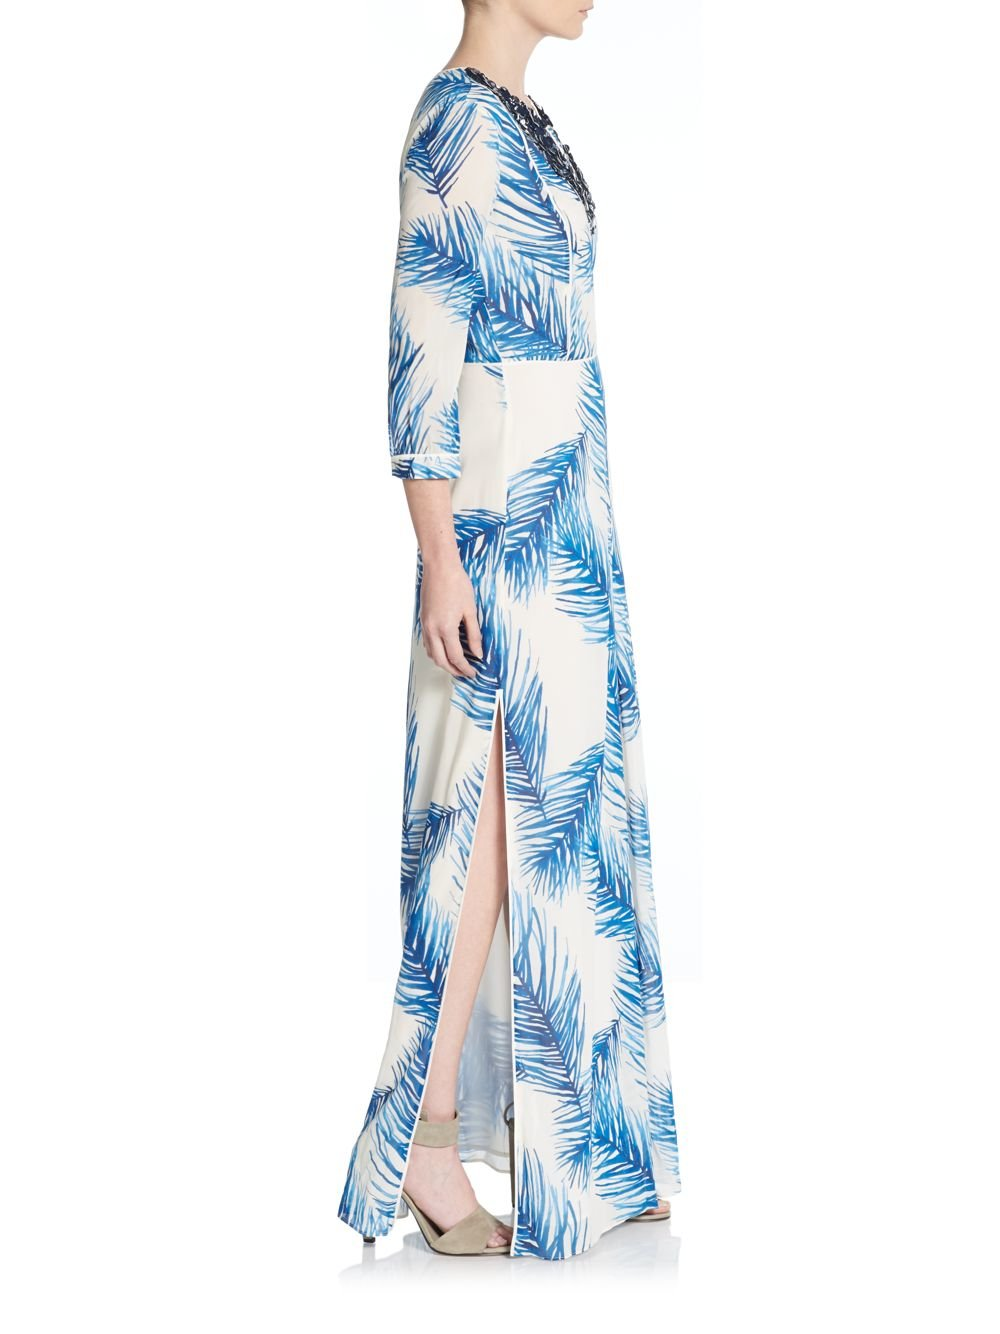 Tory burch Sequined Feather Print Maxi Dress in Blue | Lyst